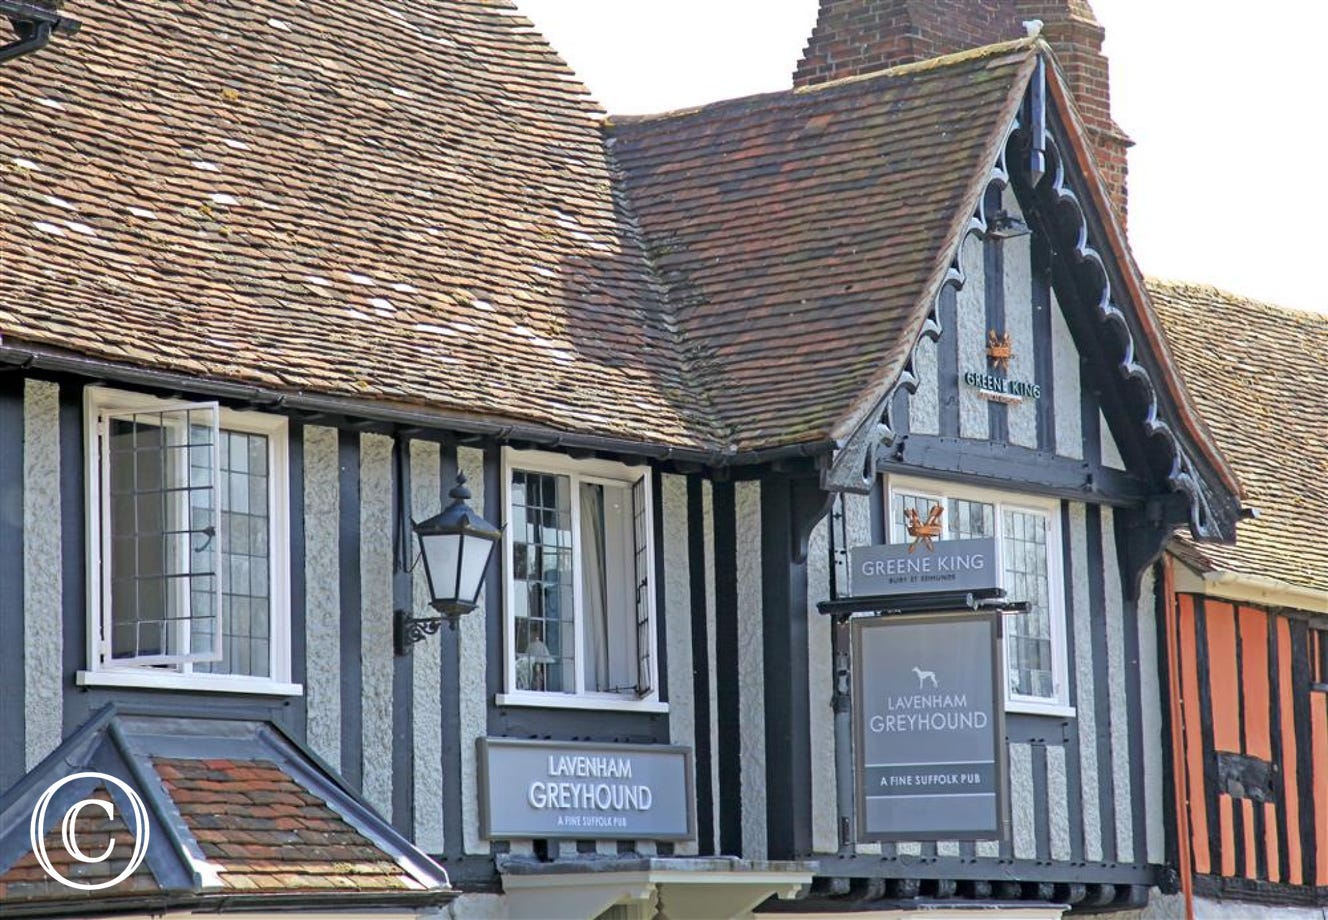 Greyhound Pub at Lavenham